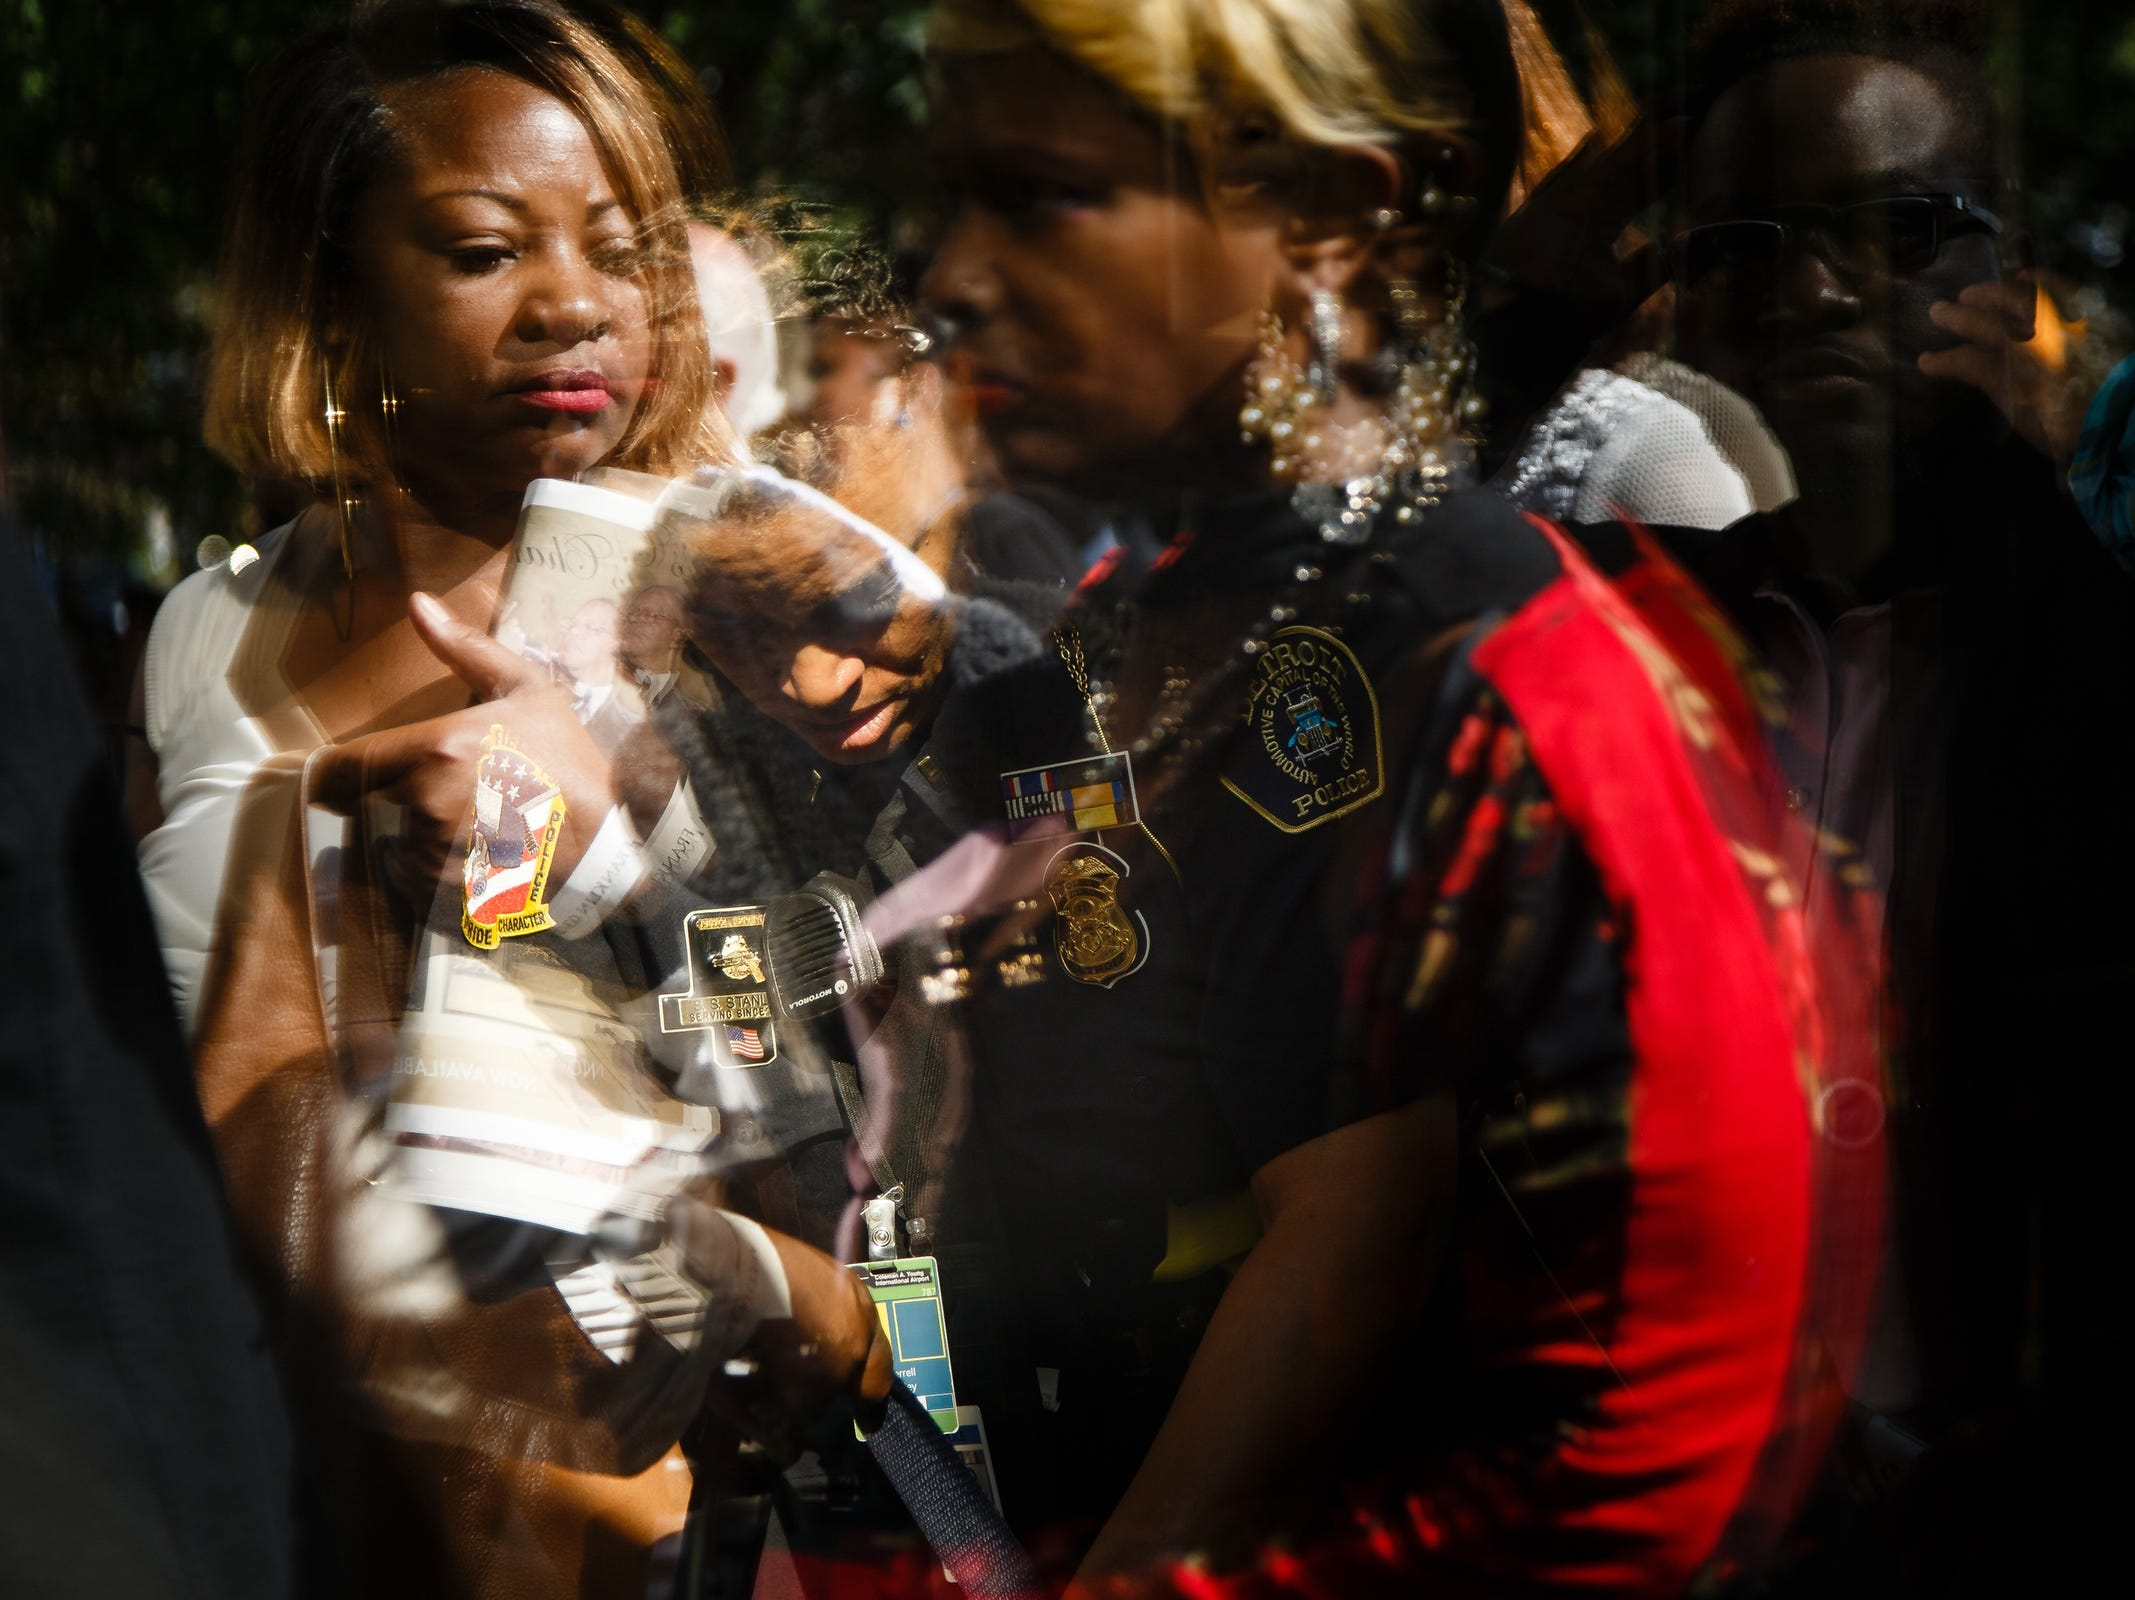 People have their bags checked before entering Aretha Franklin's funeral at Greater Grace Temple on Friday, Aug. 31, 2018 in Detroit. Franklin died on August 16, 2018.